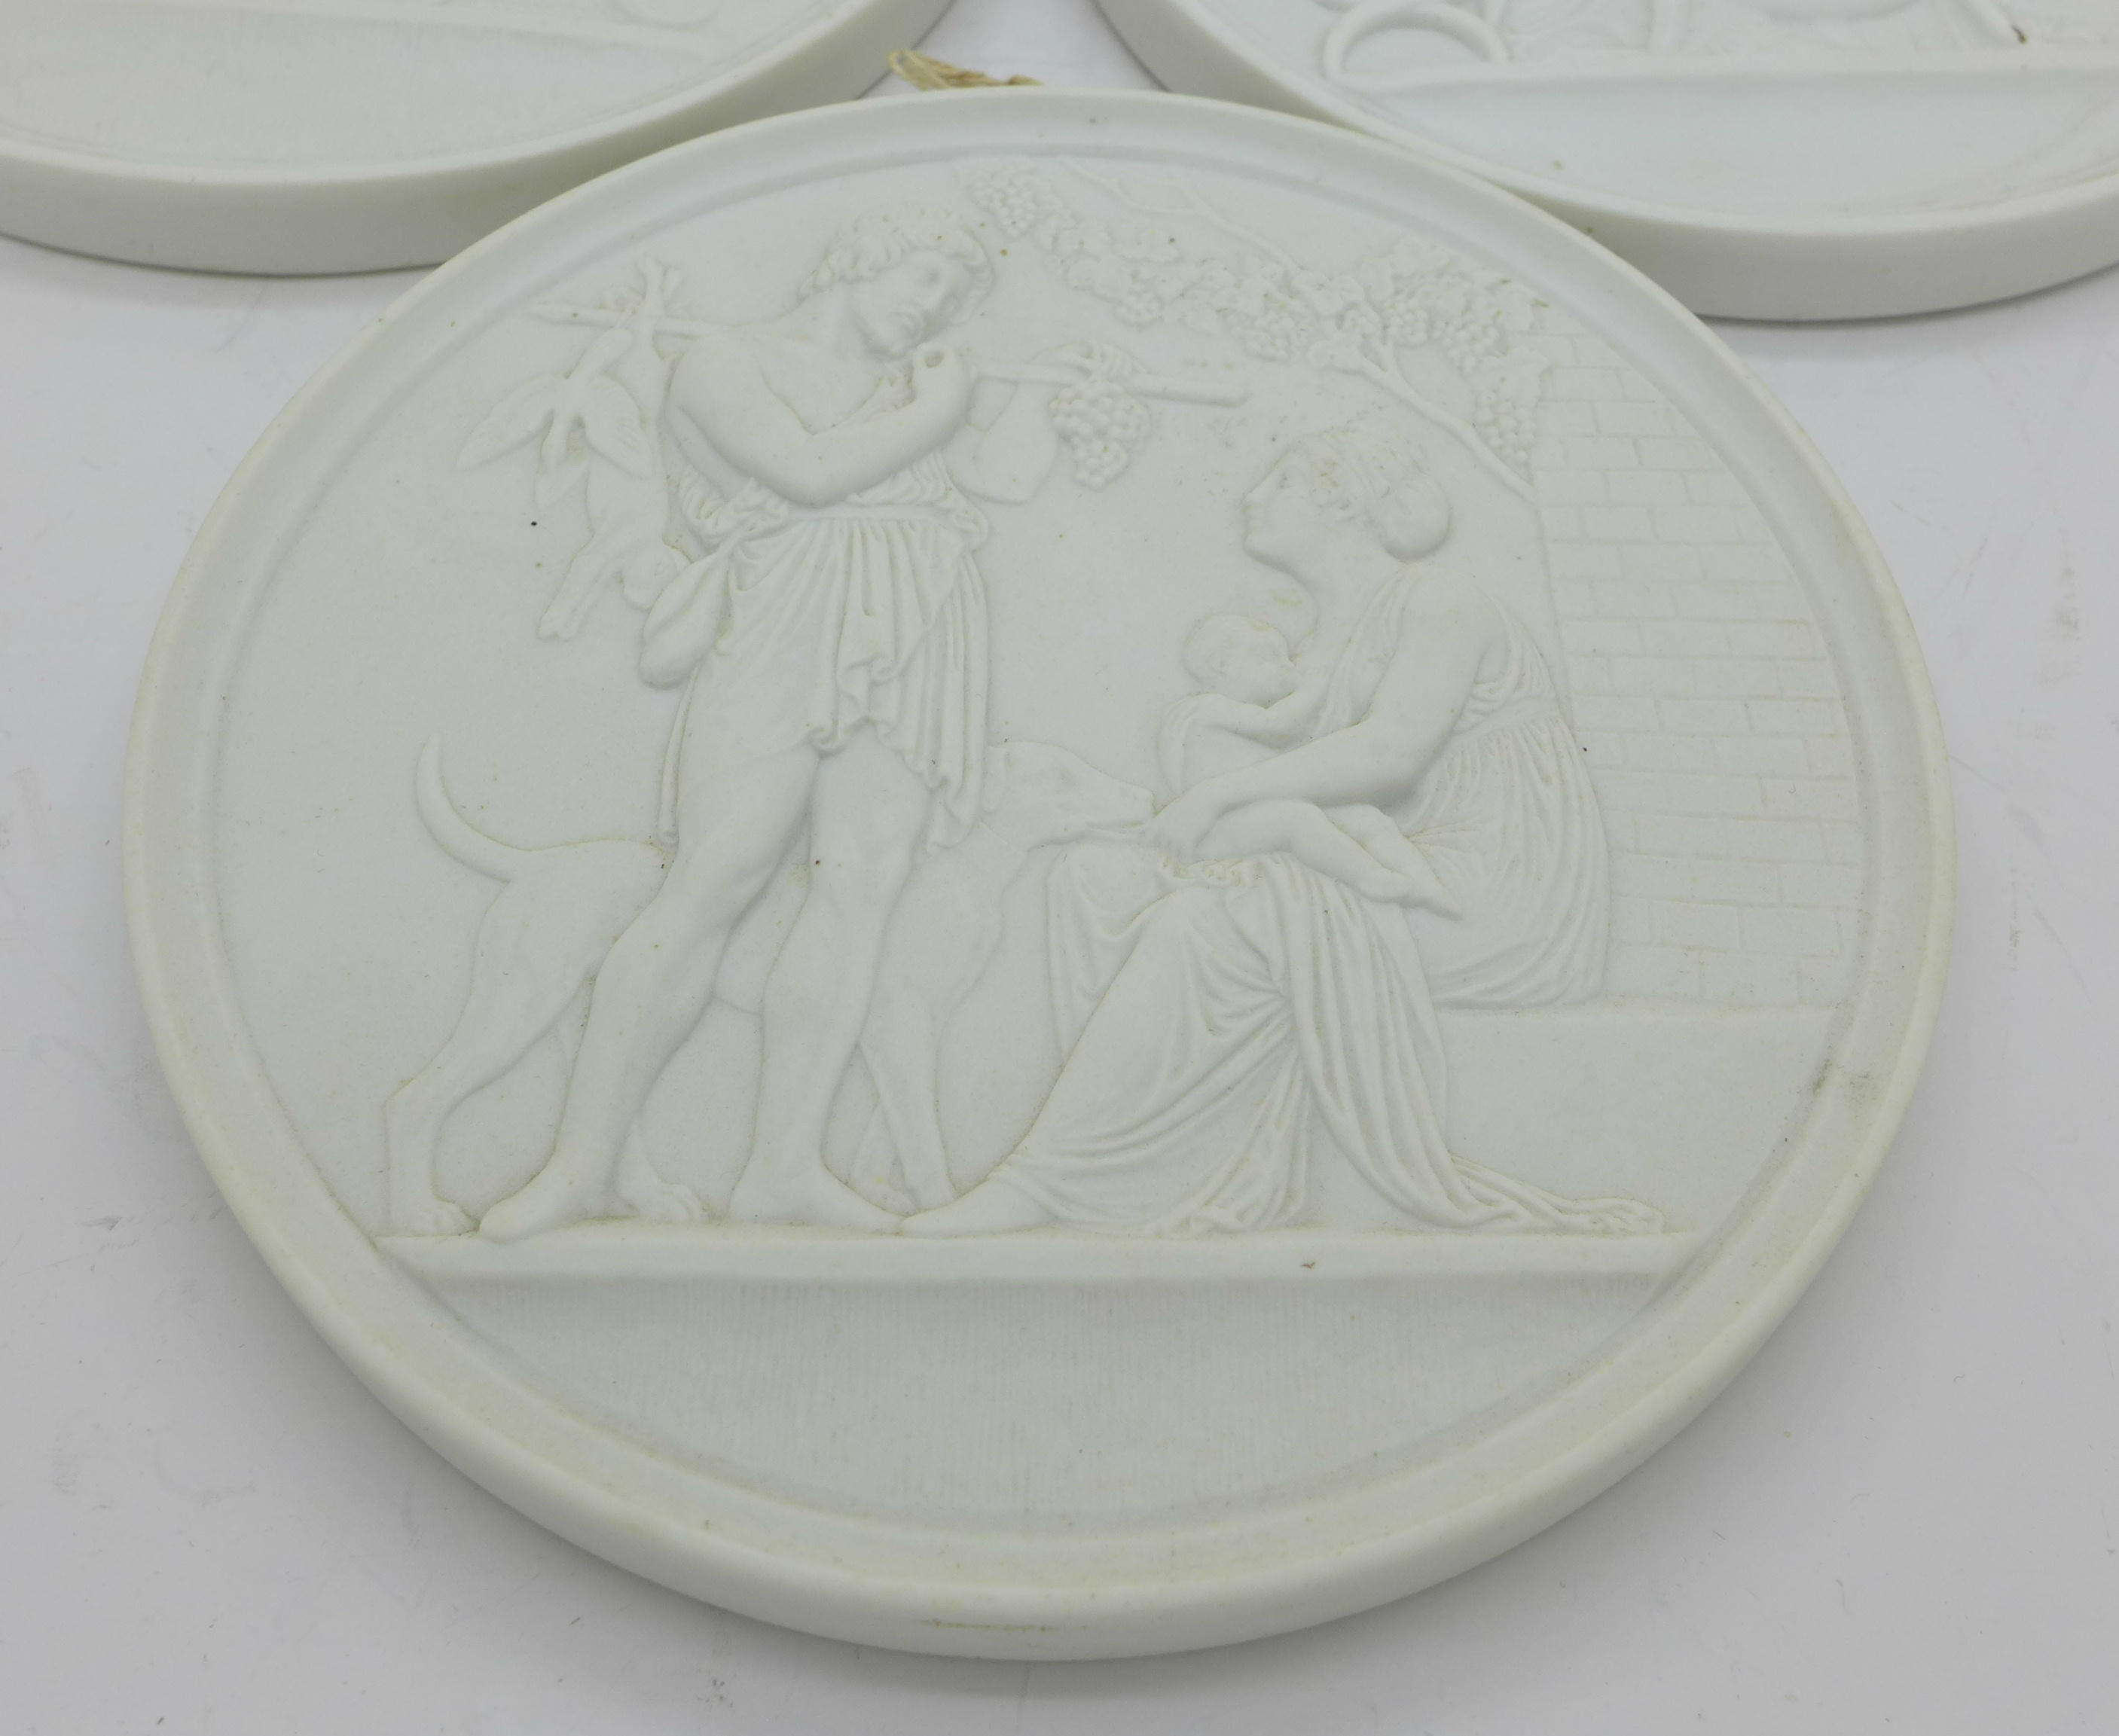 Lot 615 - Three circular plaques, B & G impressed mark,